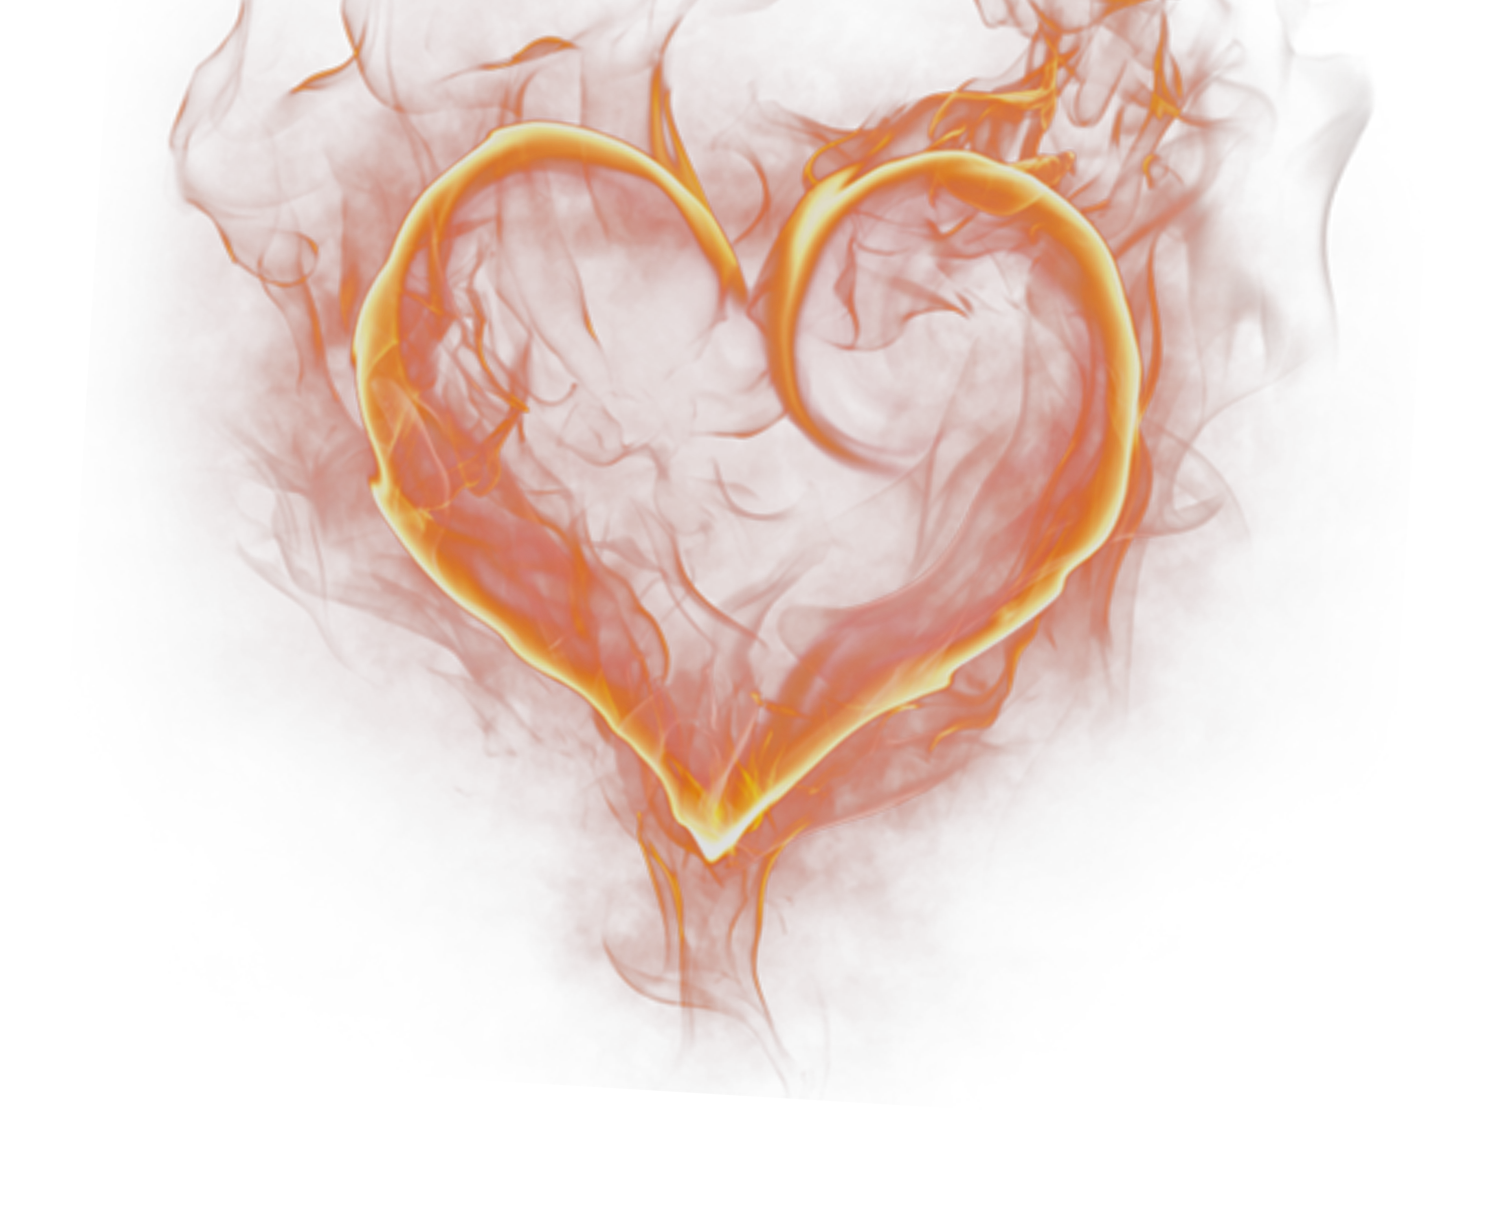 Fire Heart Manipulation Editing Background And Text Png Download Picsart Photo Editing Fire Heart Editing Background Png Images For Editing